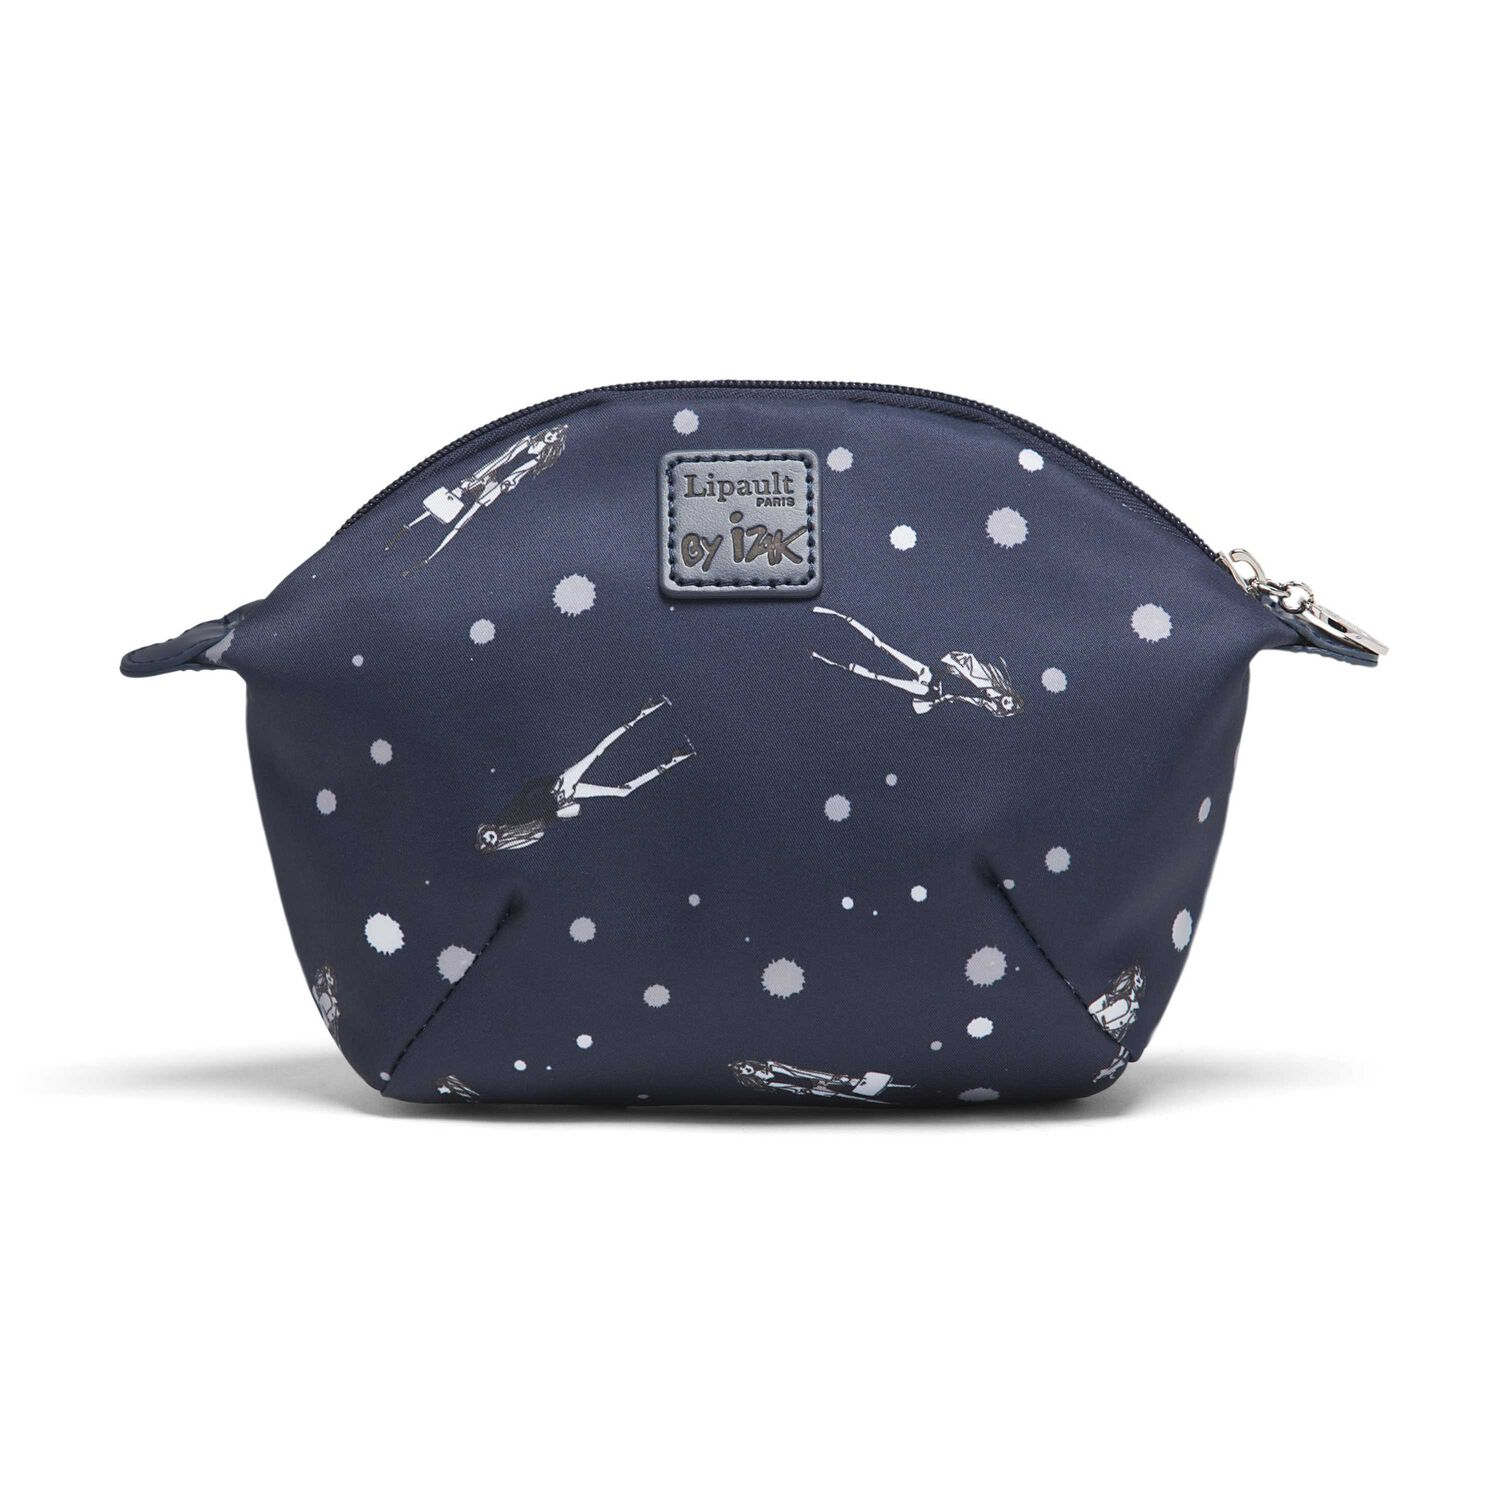 4b4c6c5d7 Lipault Izak Zenou Cosmetic Pouch in the color Pose/Night Blue.